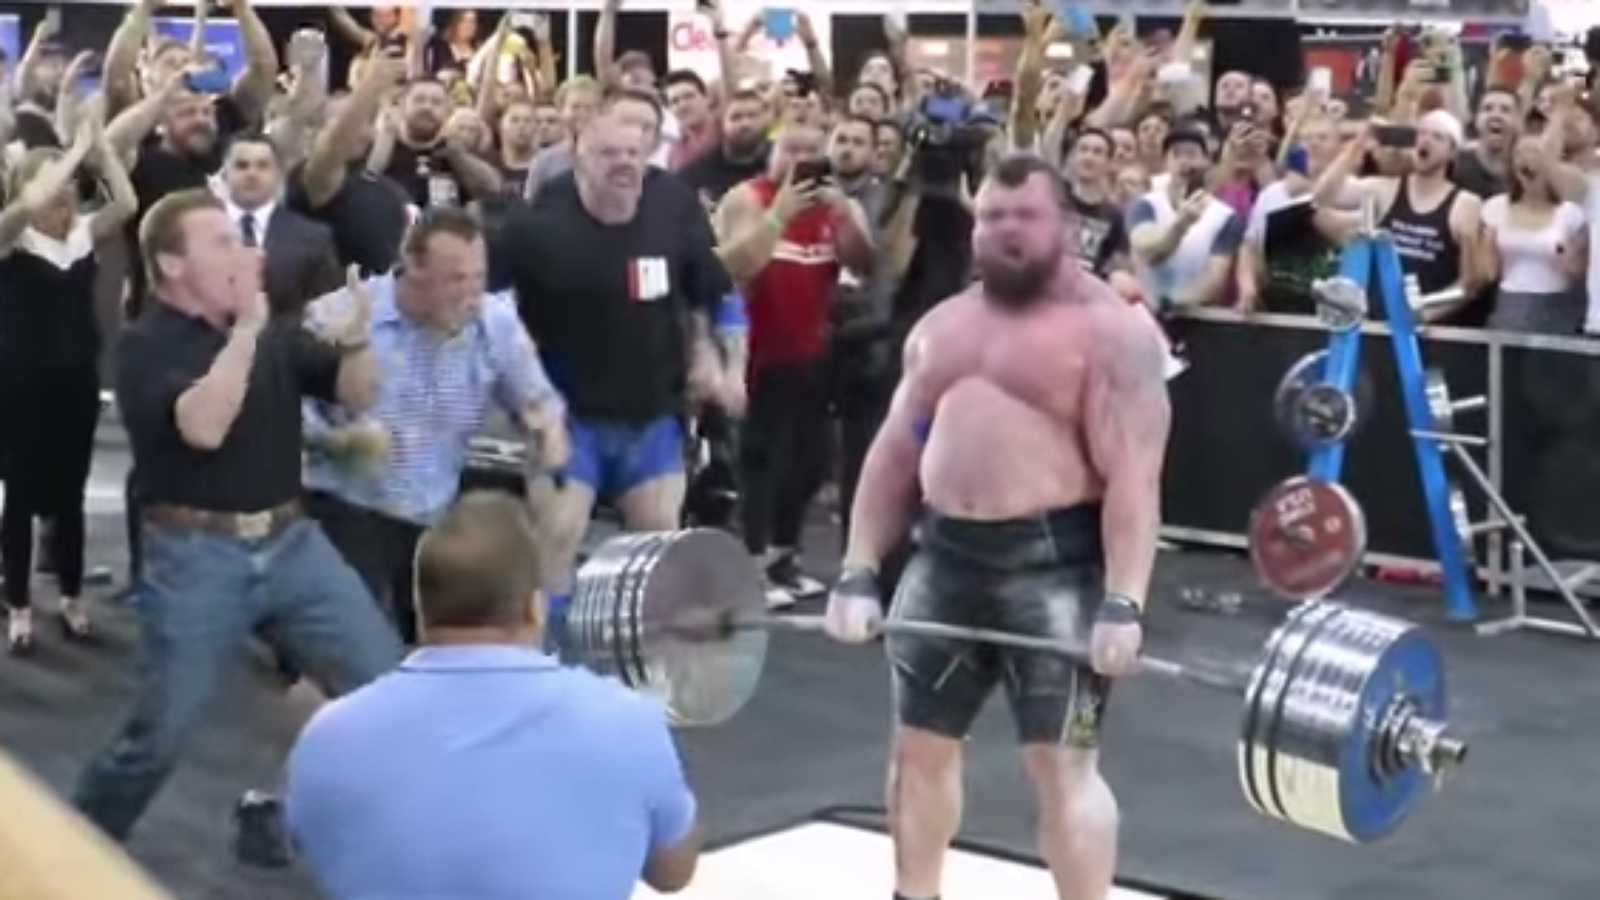 By the very definition, we can't all set world records while Arnold cheers us on... otherwise they wouldn't mean very much.